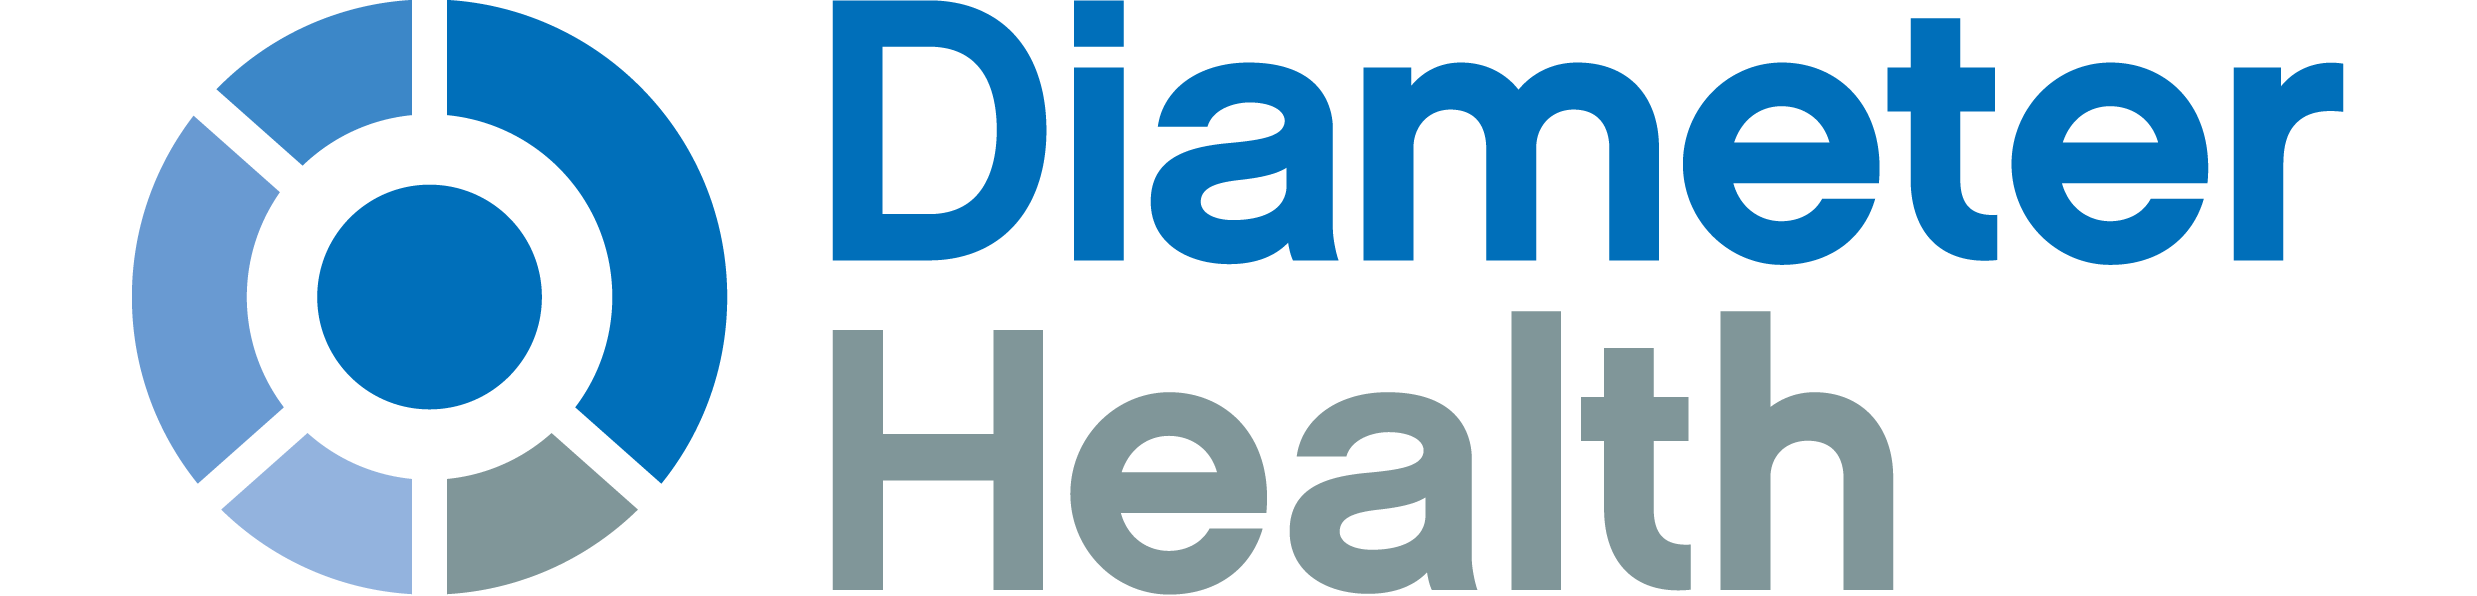 Diameter-Health-logo